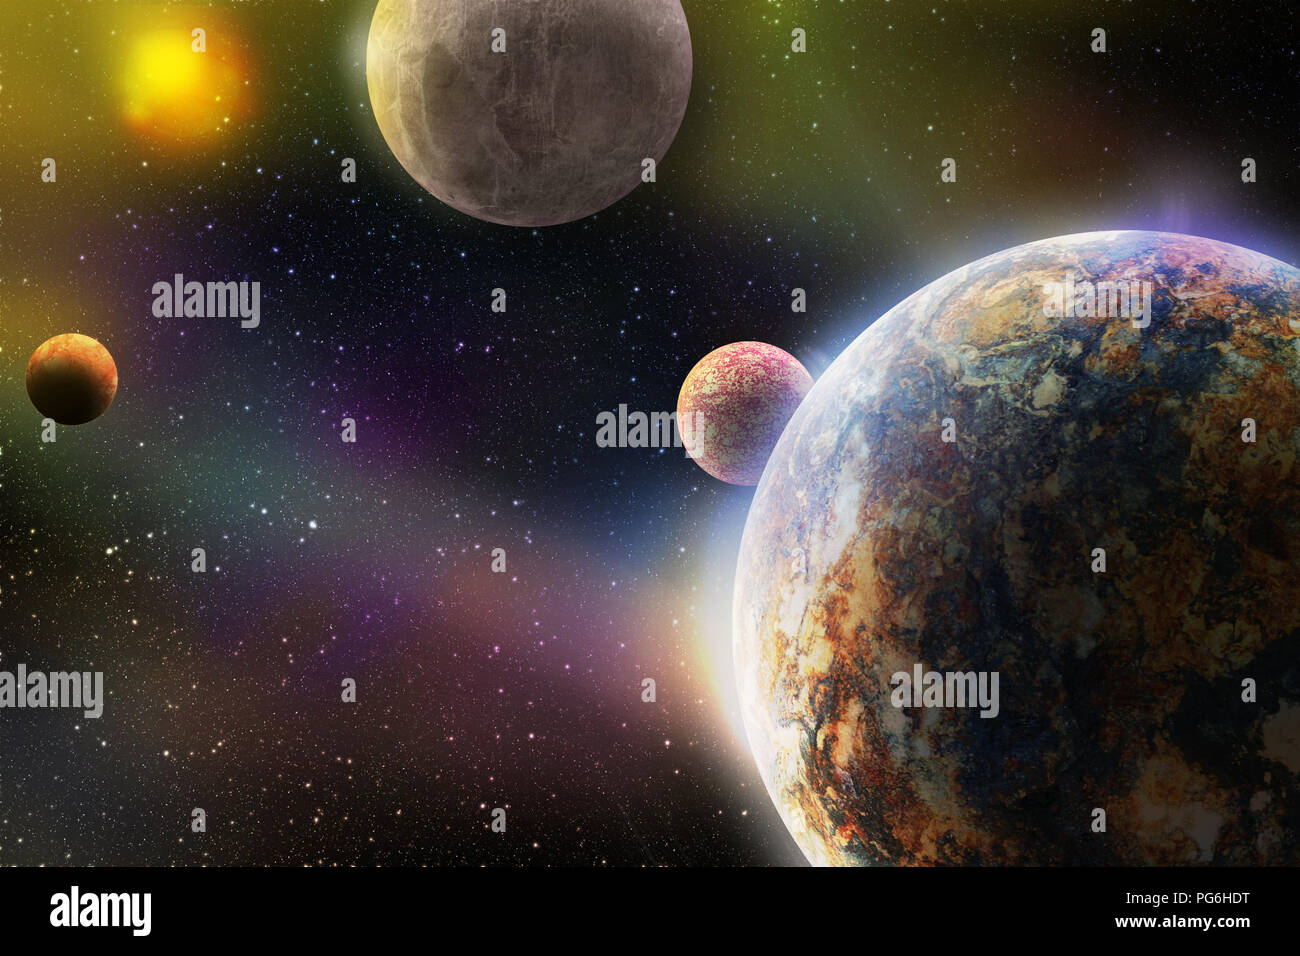 deep outer space with planets in galaxy system with solar sun and stars 3d illustration, fantasy or science fiction book cover or wallpaper background - Stock Image